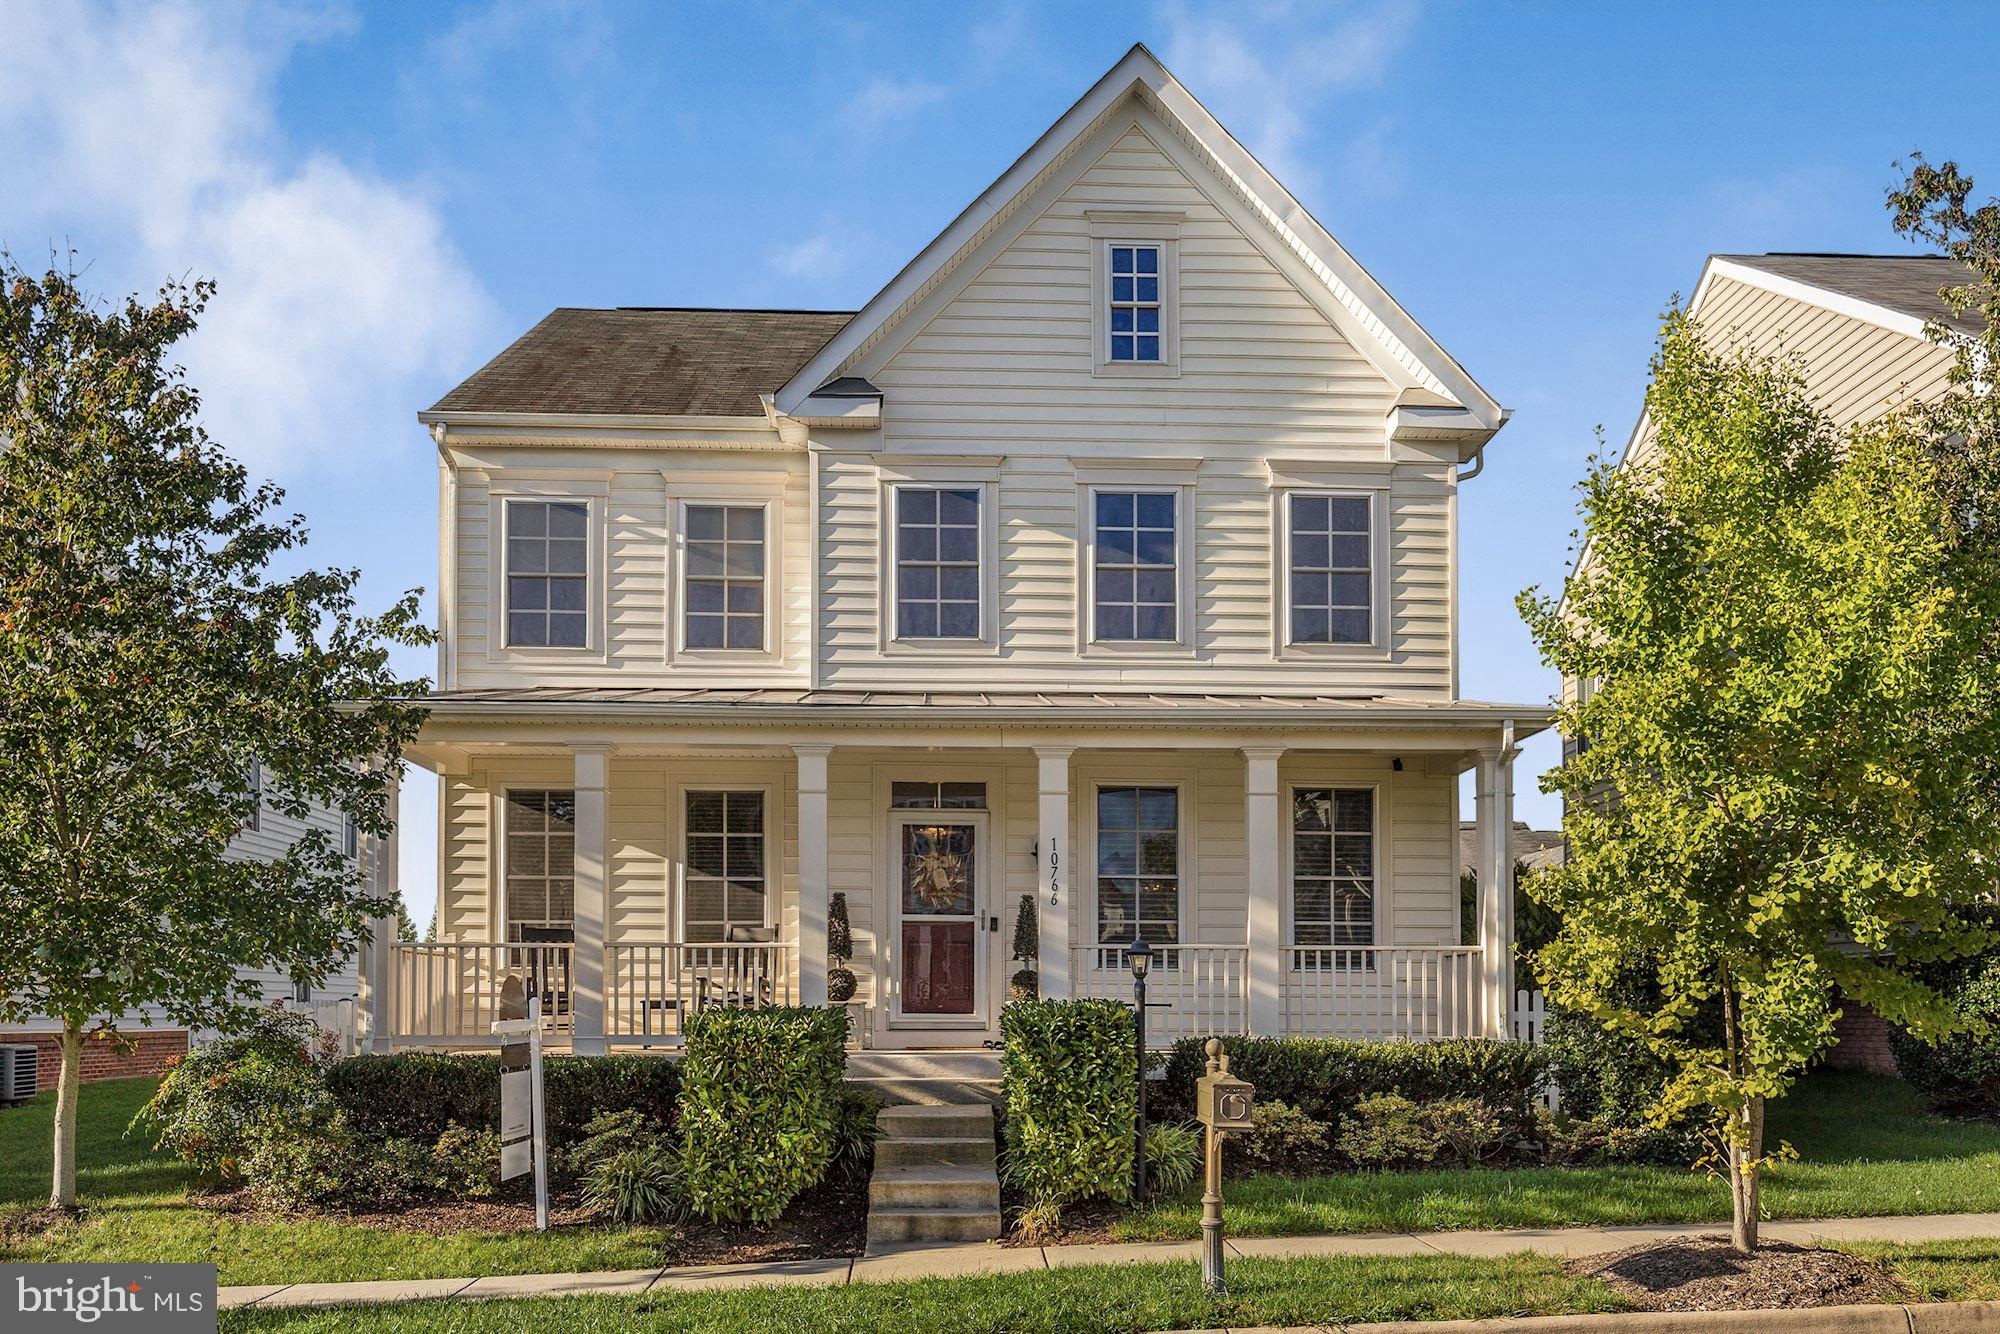 Let the charming front porch WELCOME you to 10766 Musket Ball Court. This well-maintained 4 bed, 3.5